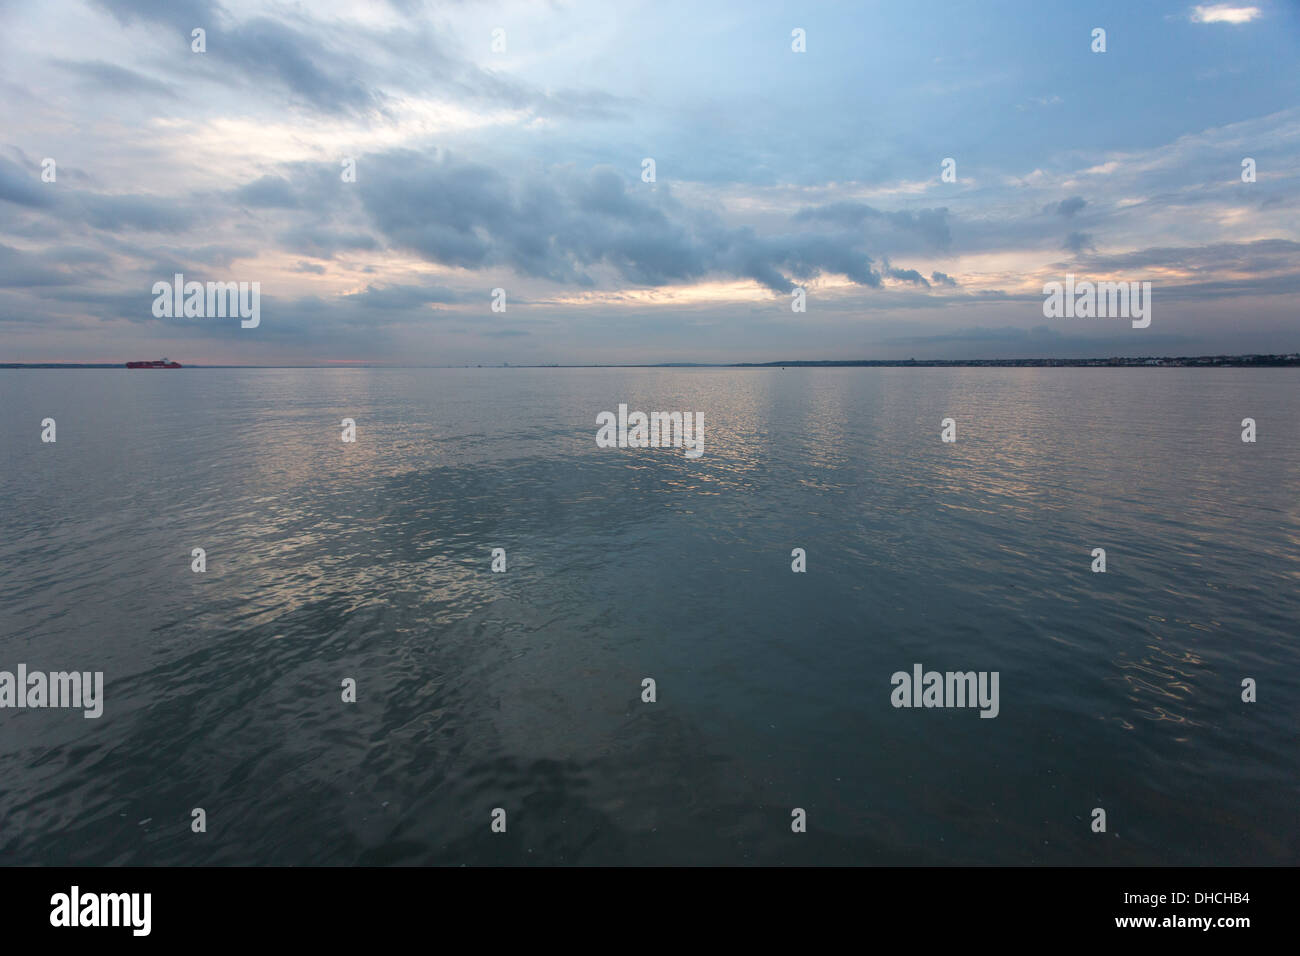 12/10/2013 Sunset over the river Thames from the end of Southend pier. - Stock Image